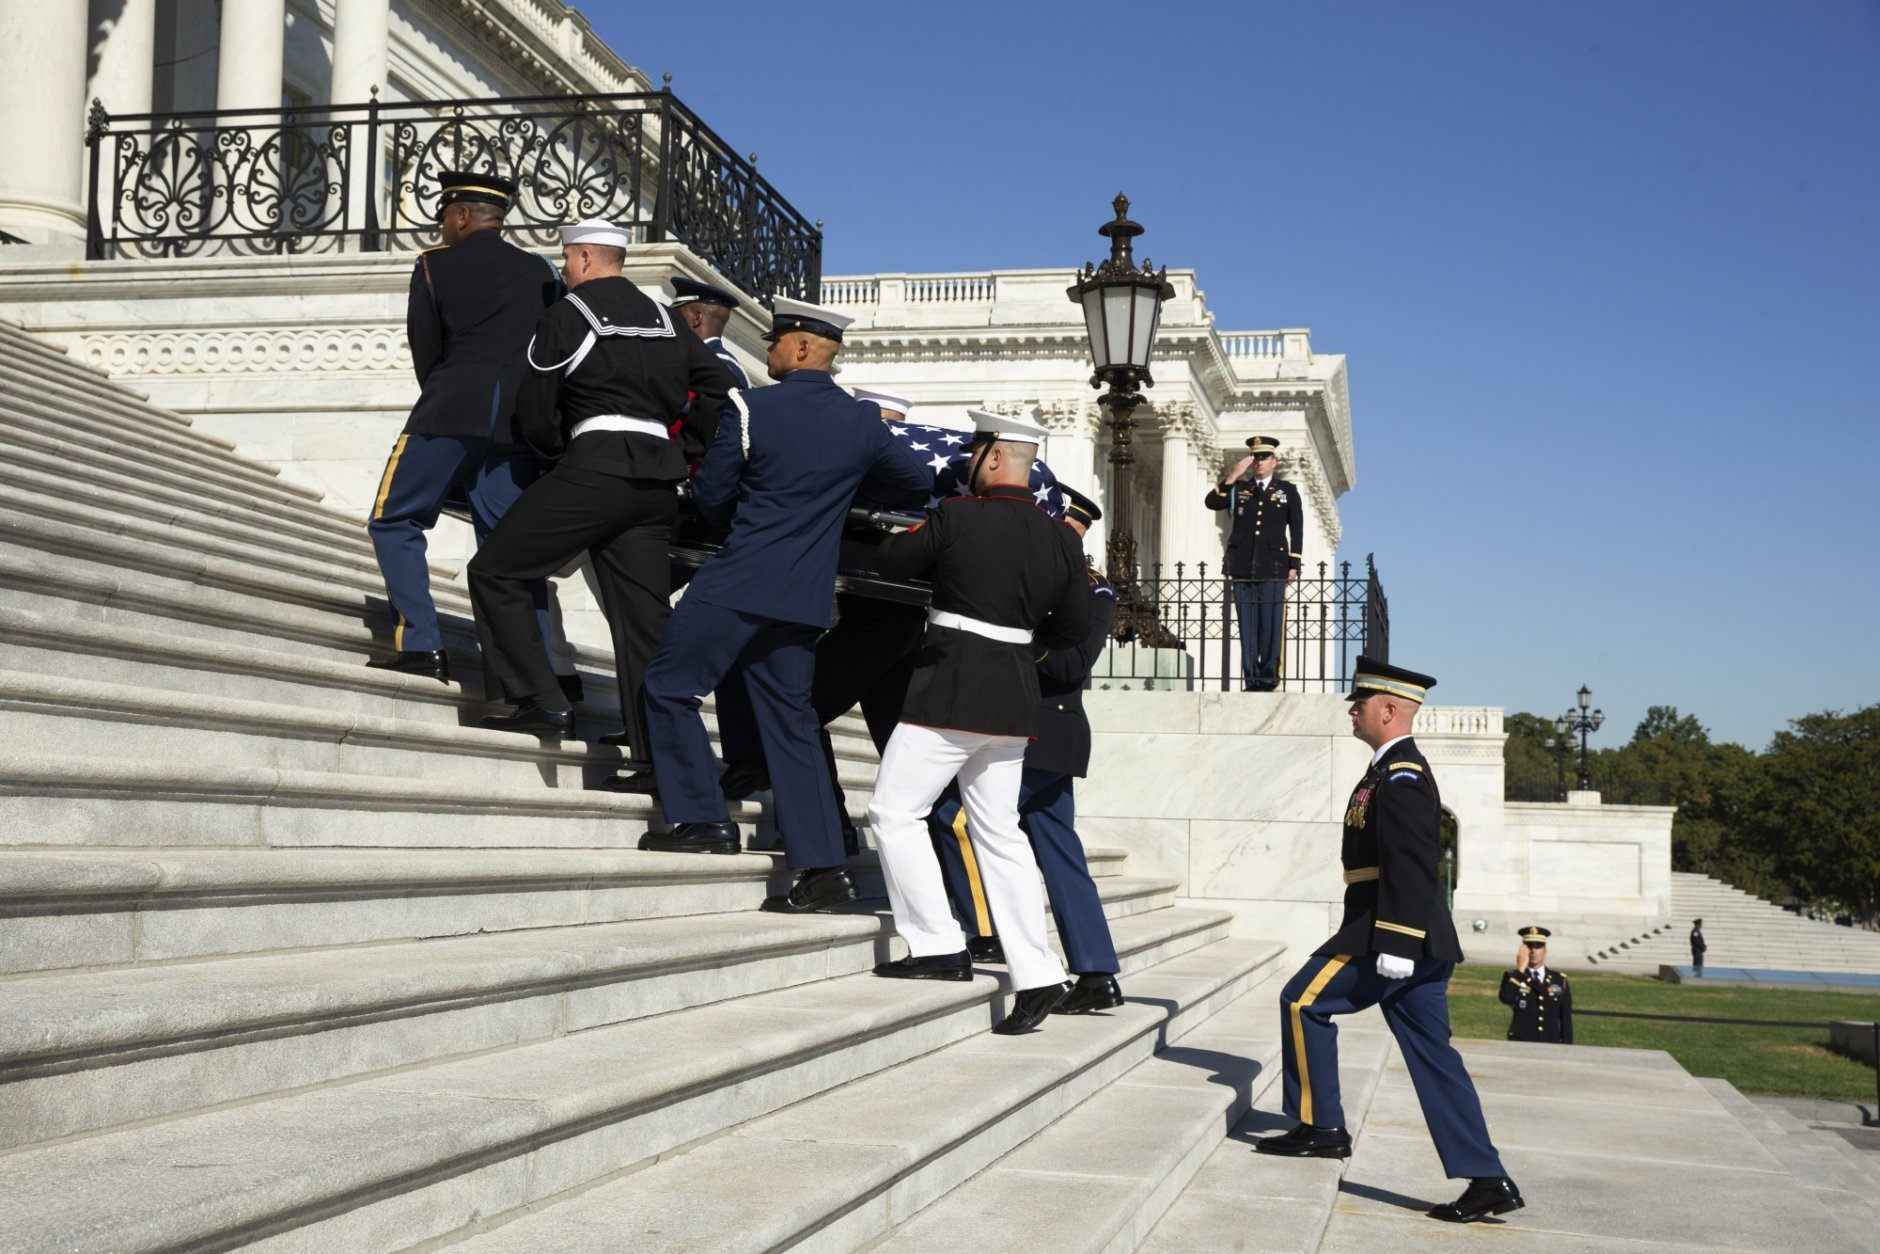 The casket of Rep. Elijah Cummings is carried by a military carry team up the East Front stairs into the U.S. Capitol Thursday, Oct. 24, 2019, in Washington. The Maryland congressman and civil rights champion died Thursday, Oct. 17, at age 68 of complications from long-standing health issues. (Michael Reynolds/Pool via AP)